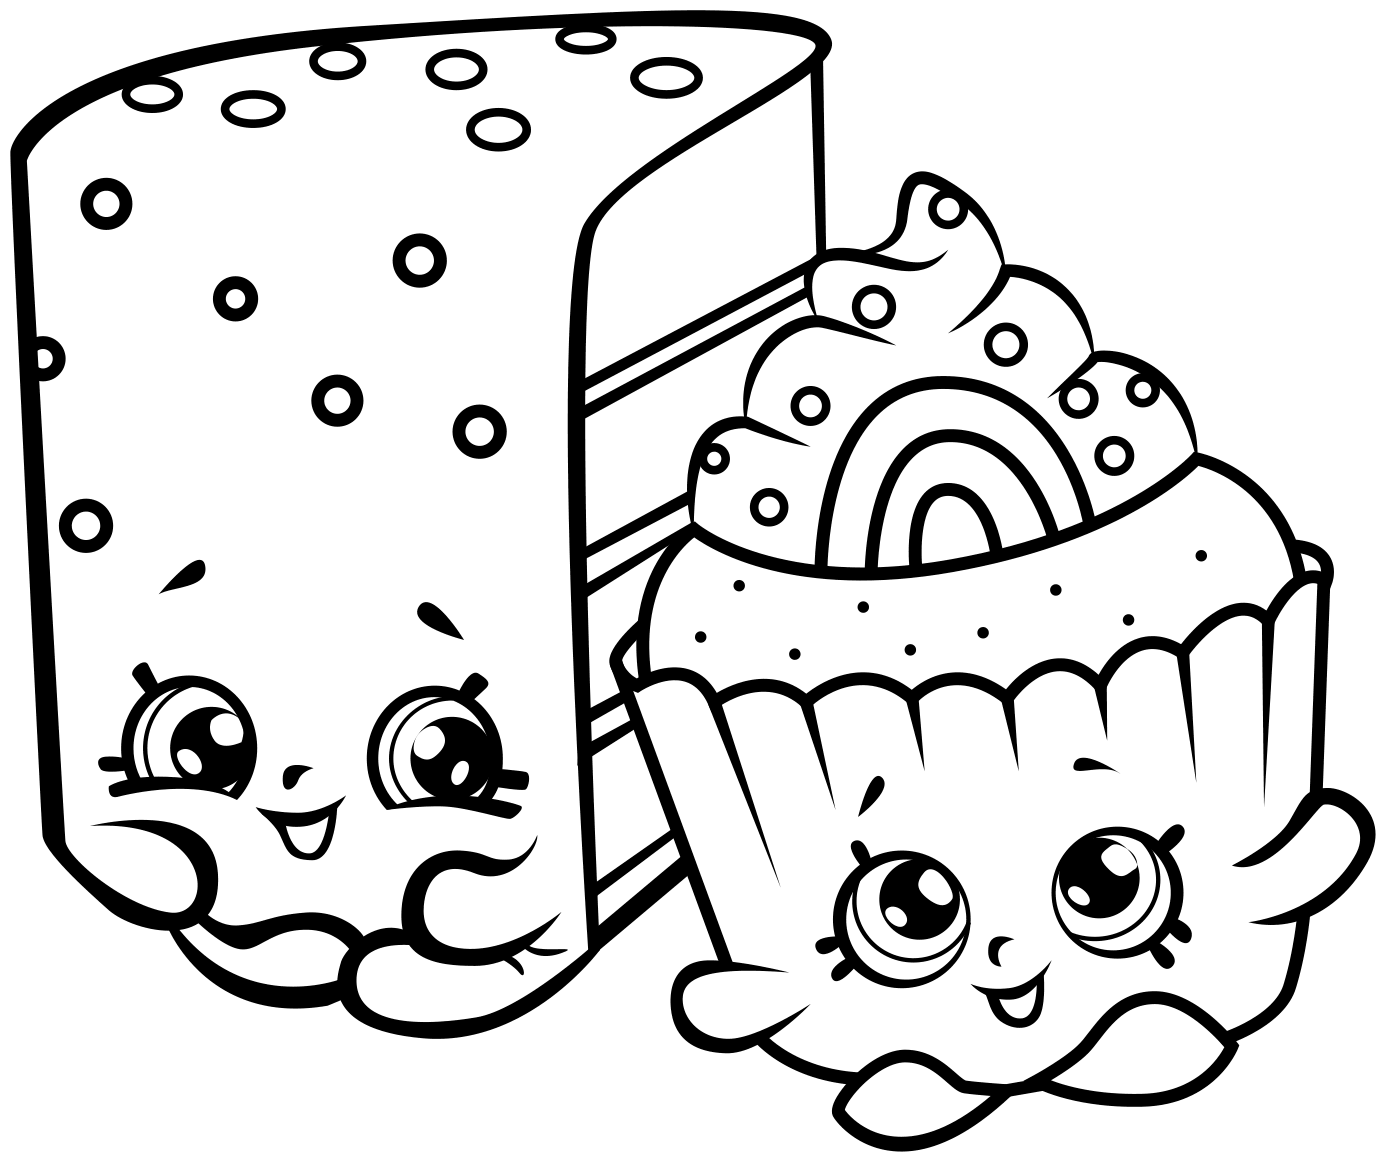 1386x1162 Cute Shopkins Coloring Page For Kids